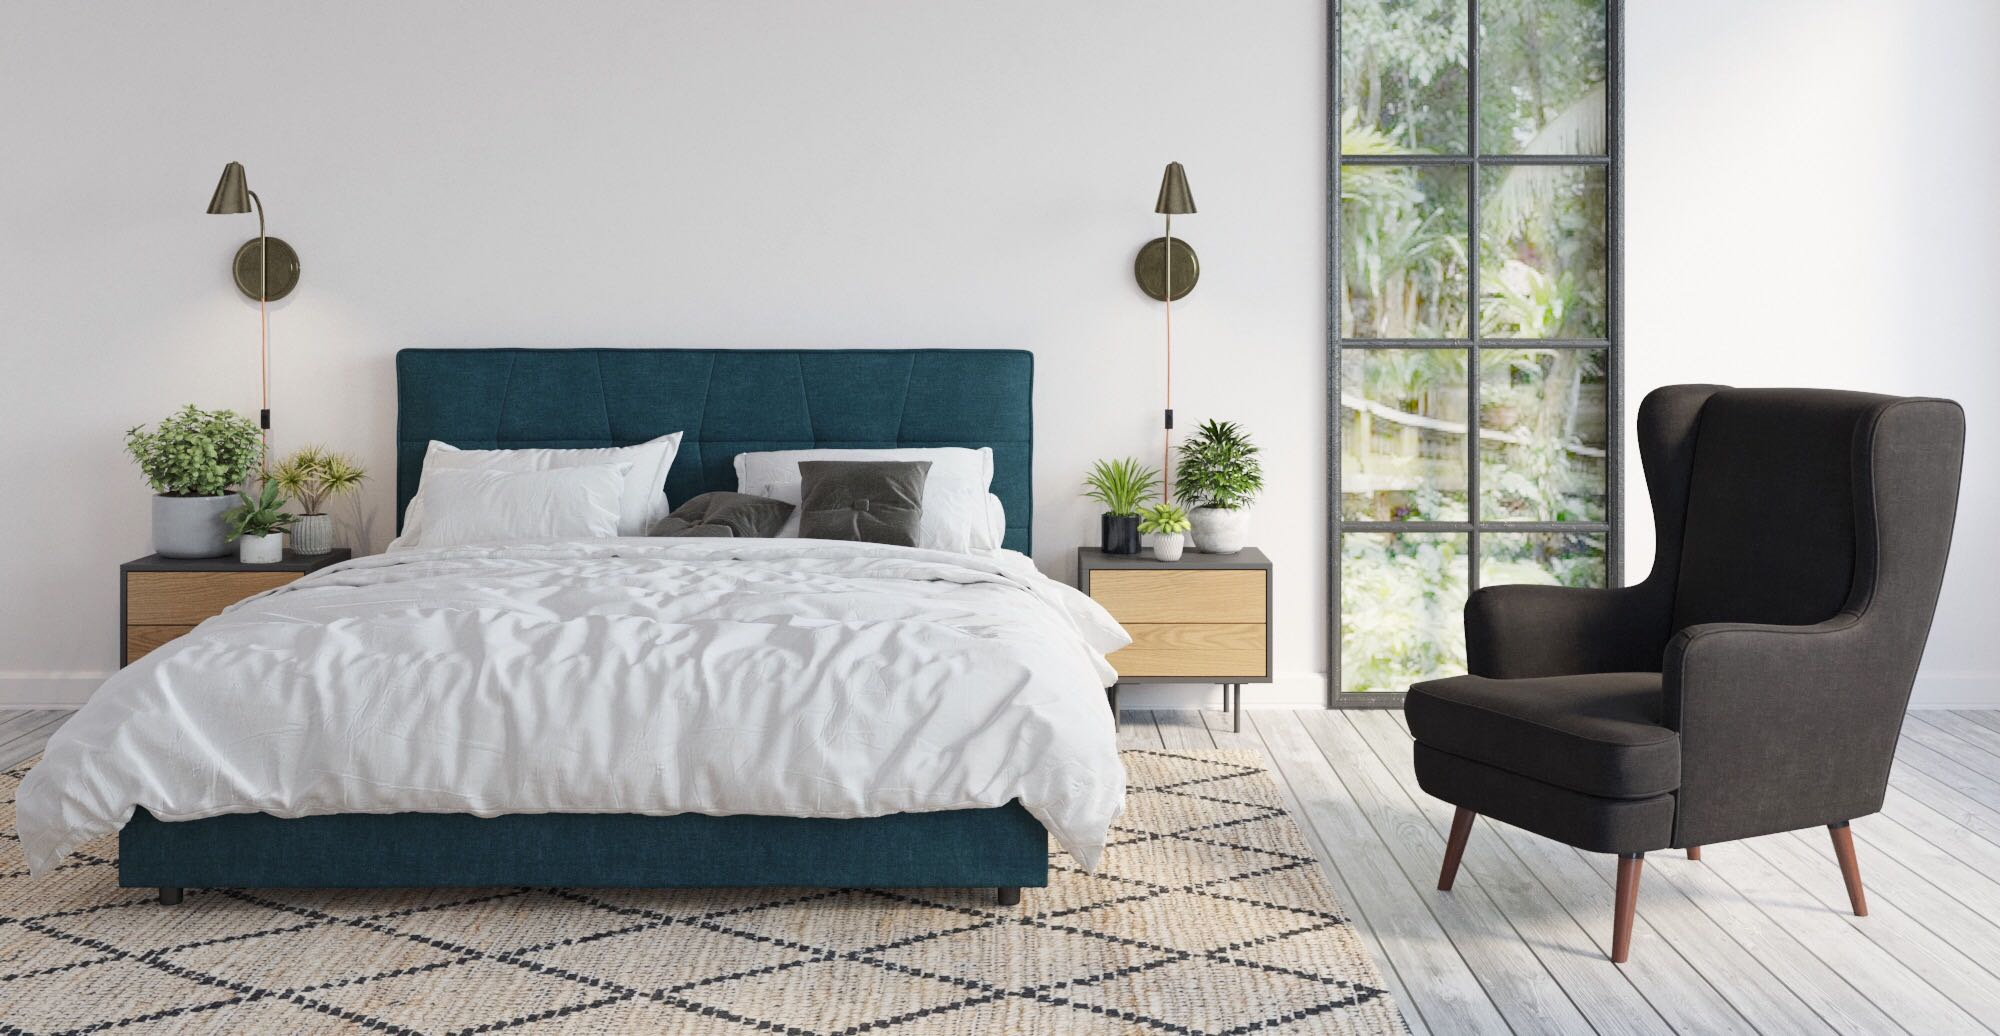 Munich Queen Size Bed Head styled in modern contemporary bedroom